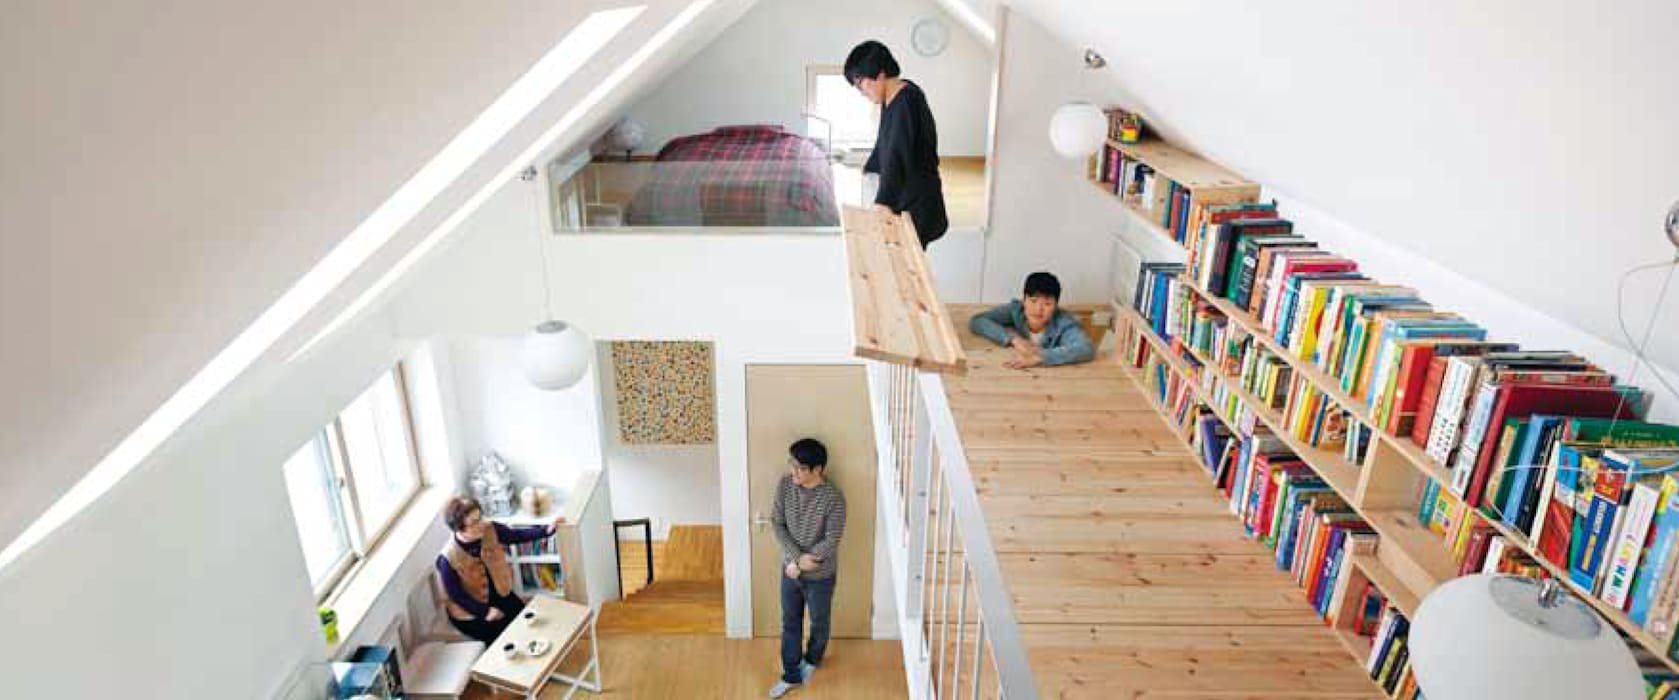 Living room by 비온후풍경 ㅣ J2H Architects